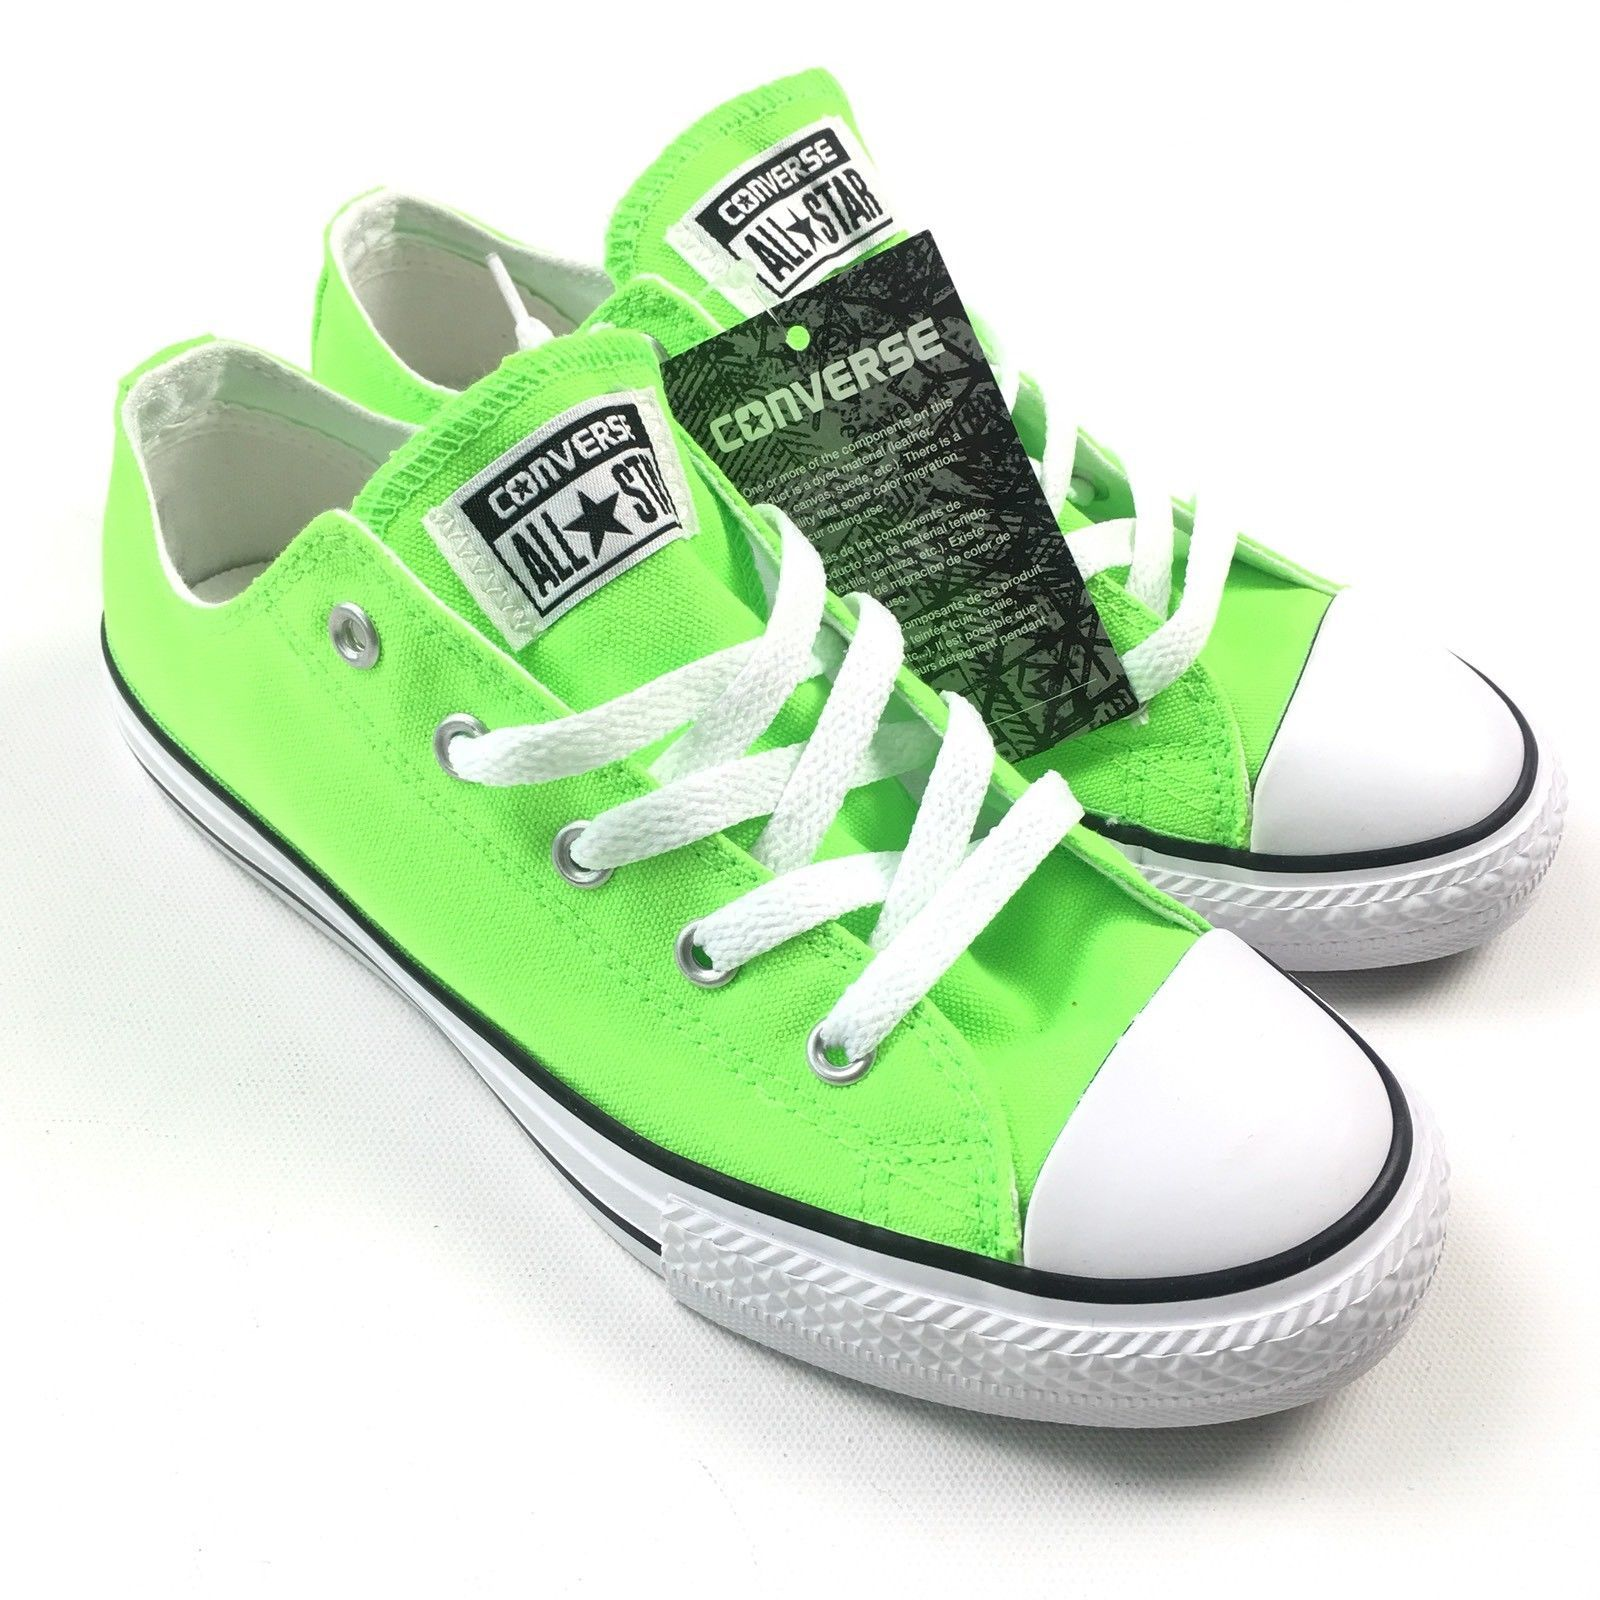 8b084ce6dca1 ... Converse Womens Chuck Taylor OX Green Gecko White Sneakers Size 5 NEW   35 A5 ...